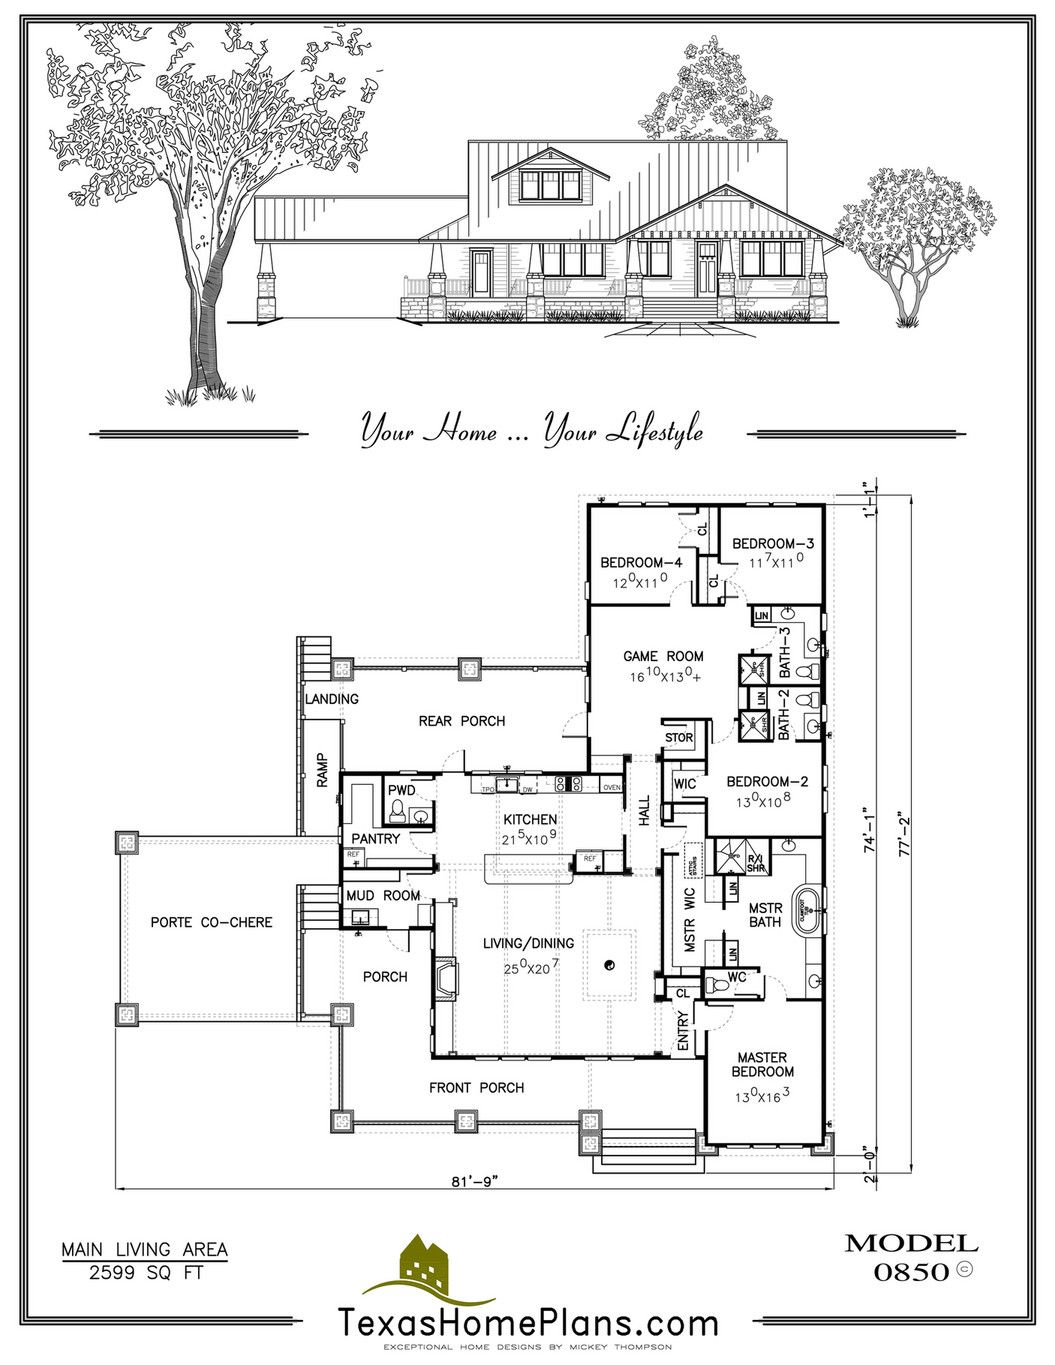 Texas home plans traditional homes page morton building also rh pinterest